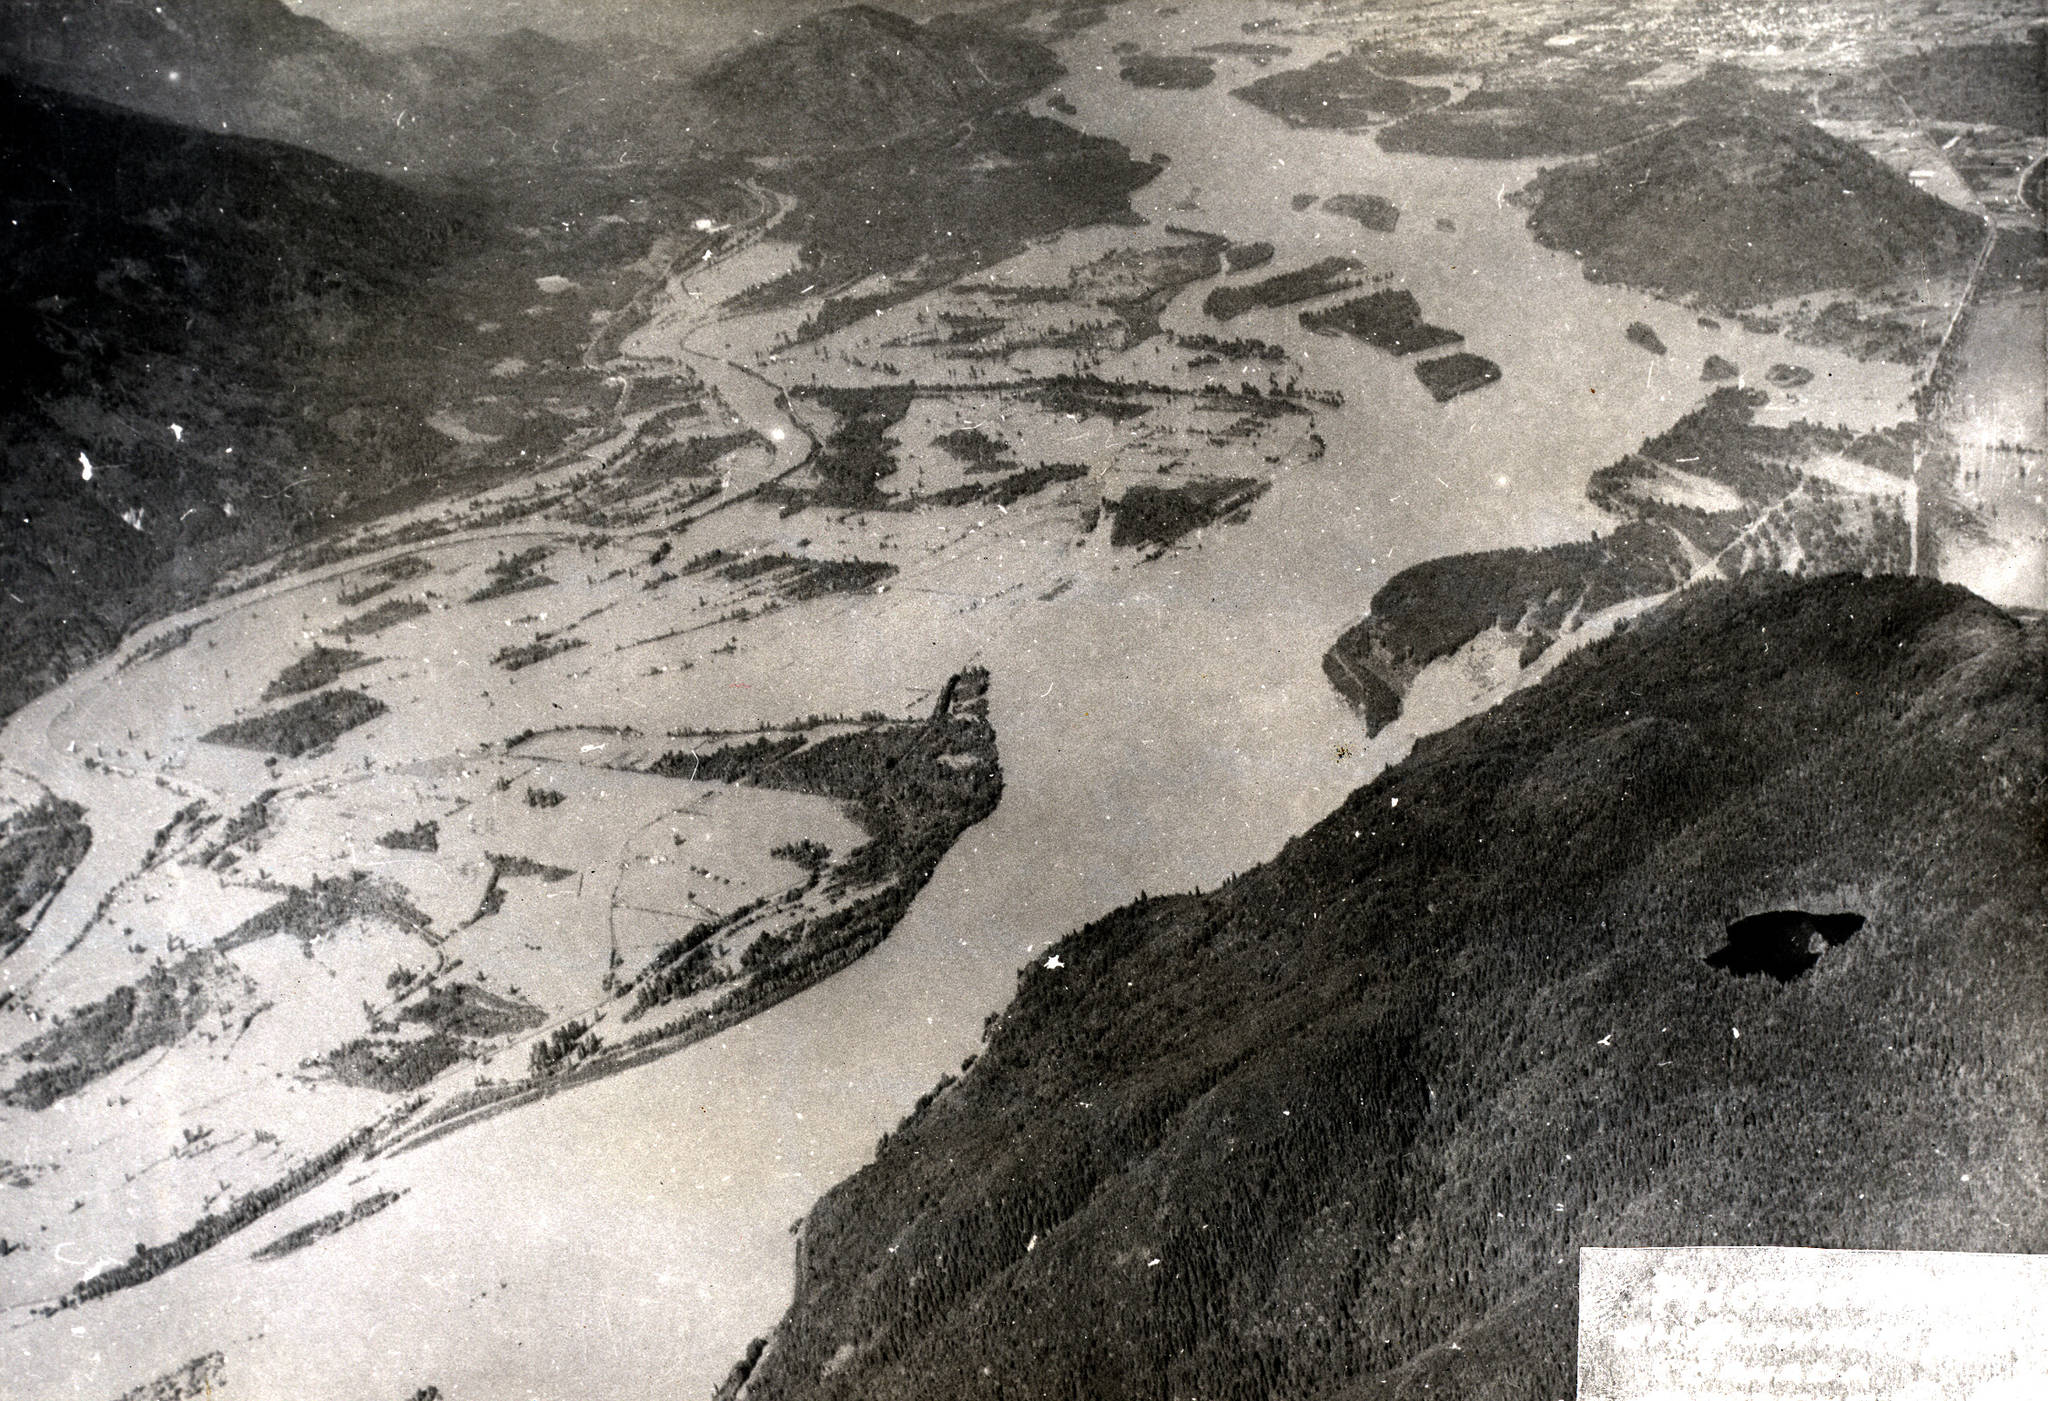 An aerial view, without horizon, of the Fraser River and part of Sumas Mountain, during the 1948 Fraser River flood. Nicomen Island is seen inundated with flood water at top centre in image. Chilliwack Mountain is visible at top right (1948). (Photograph courtesy of the Chilliwack Museum and Archives P669).